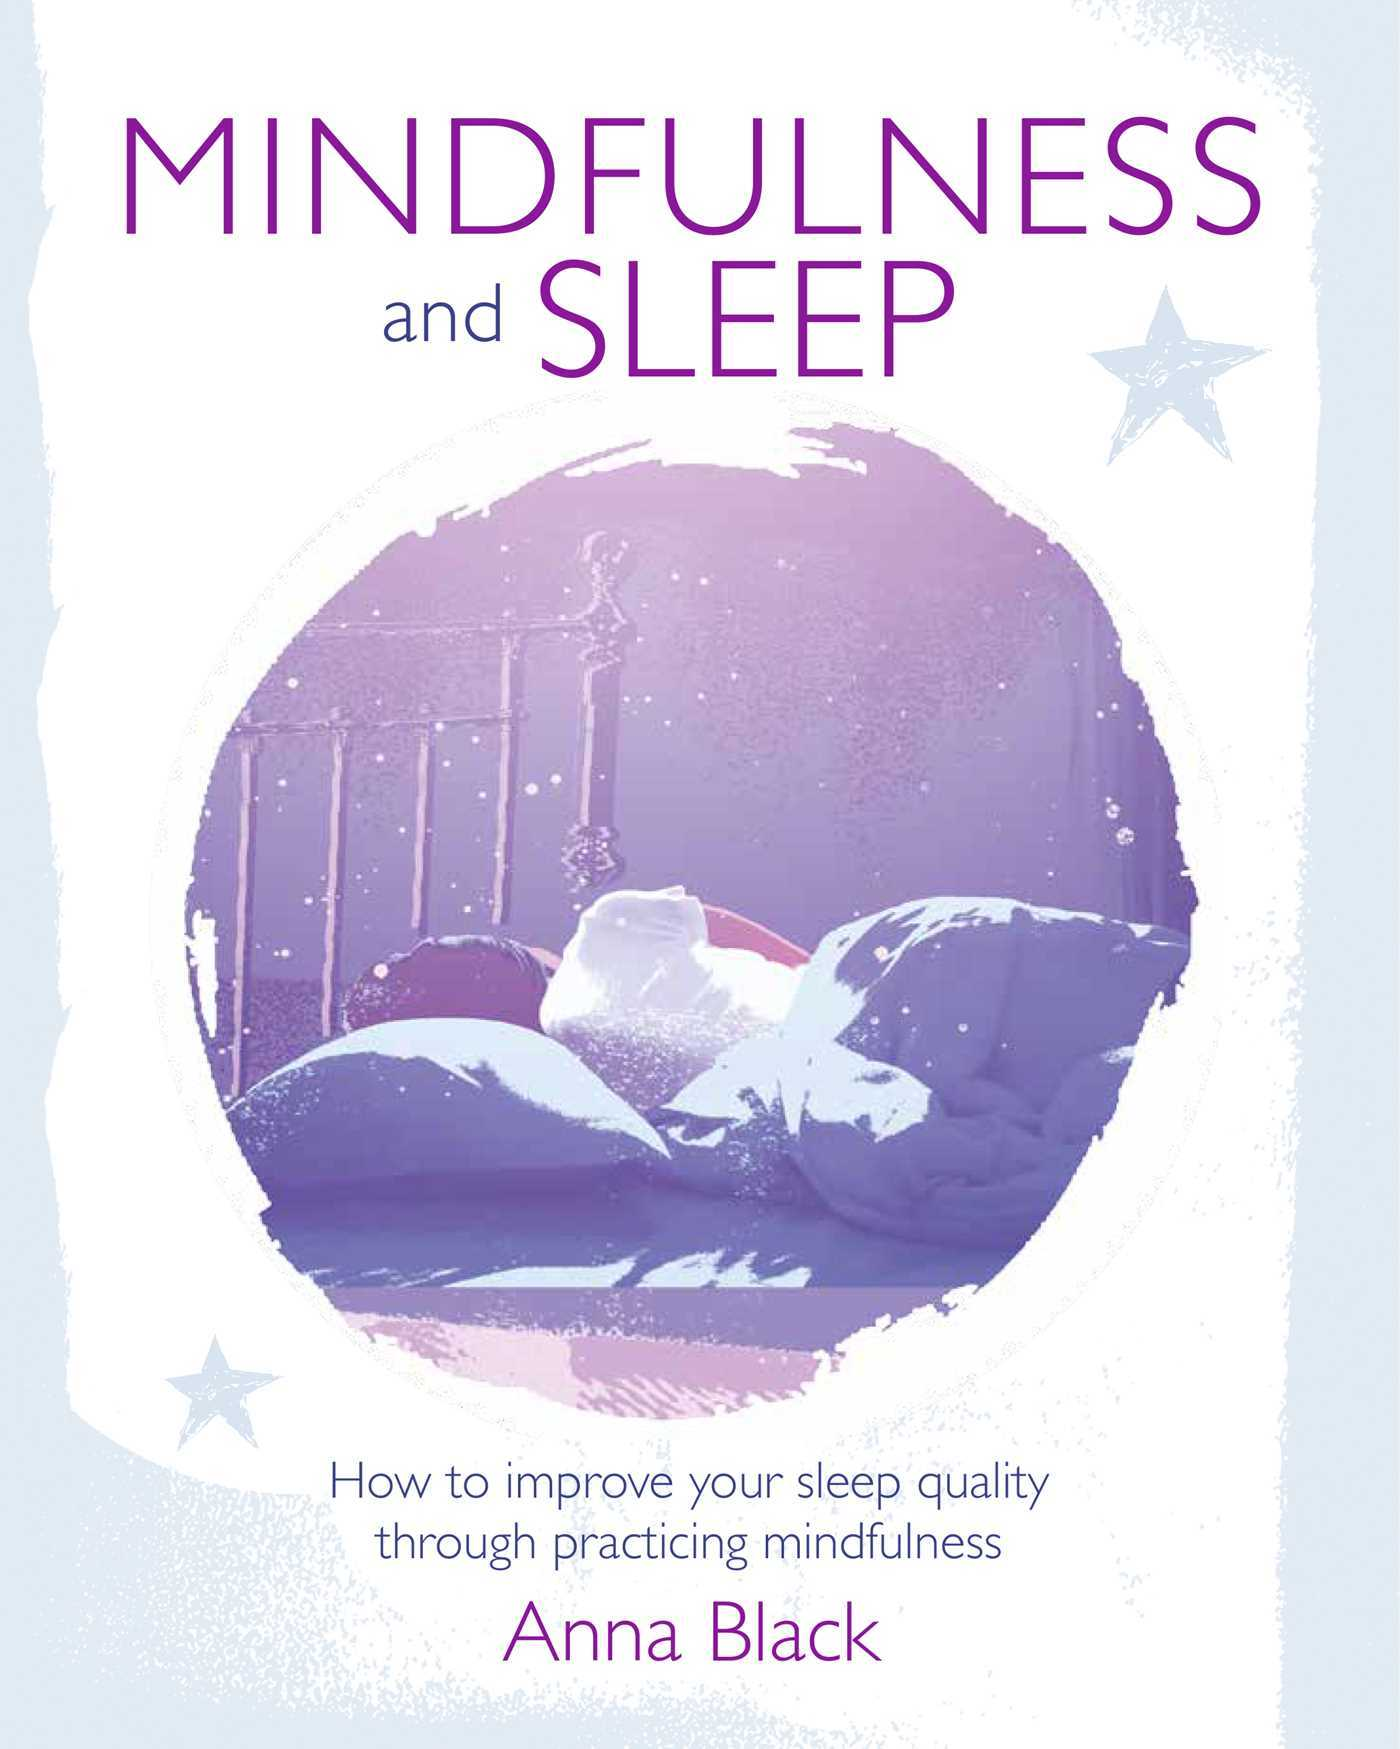 Mindfulness and Sleep  How to improve your sleep quality through practicing mindfulness (6 Dec 2018, CICO Books)